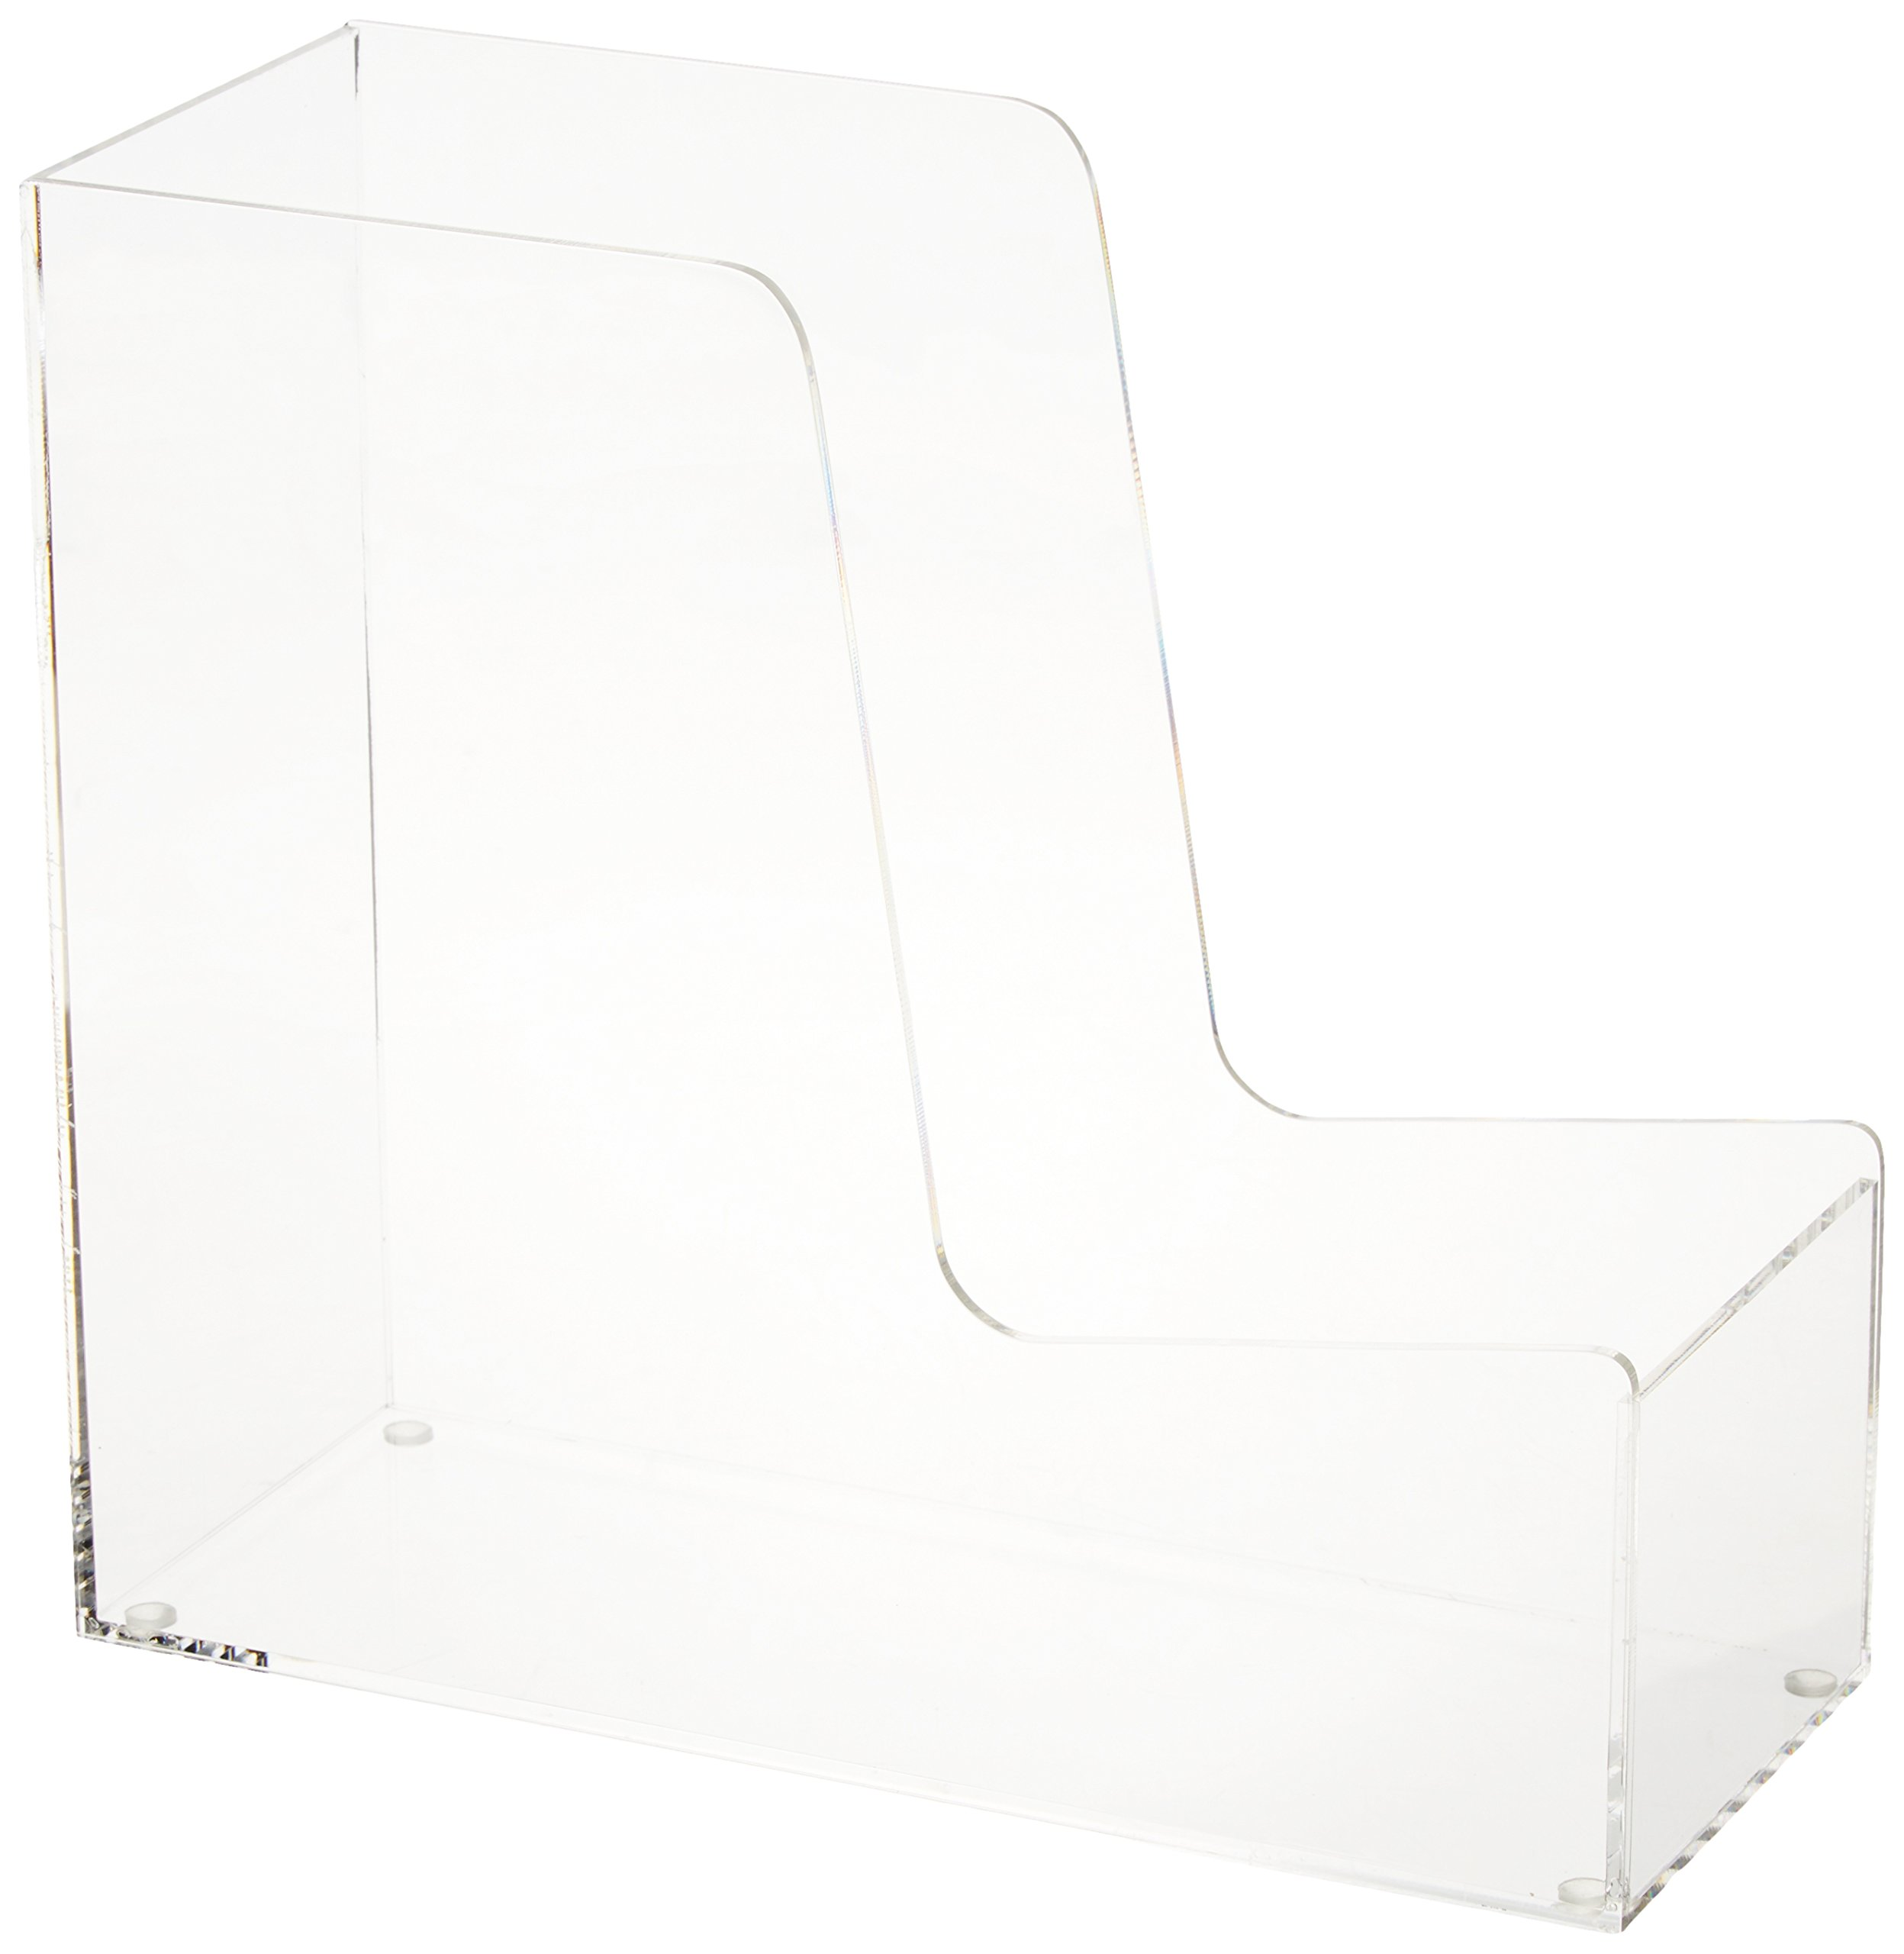 HCD Refined by Honey-Can-Do OFC-06389 Magazine Holder, 10.2L x 4.2W x 9.3H